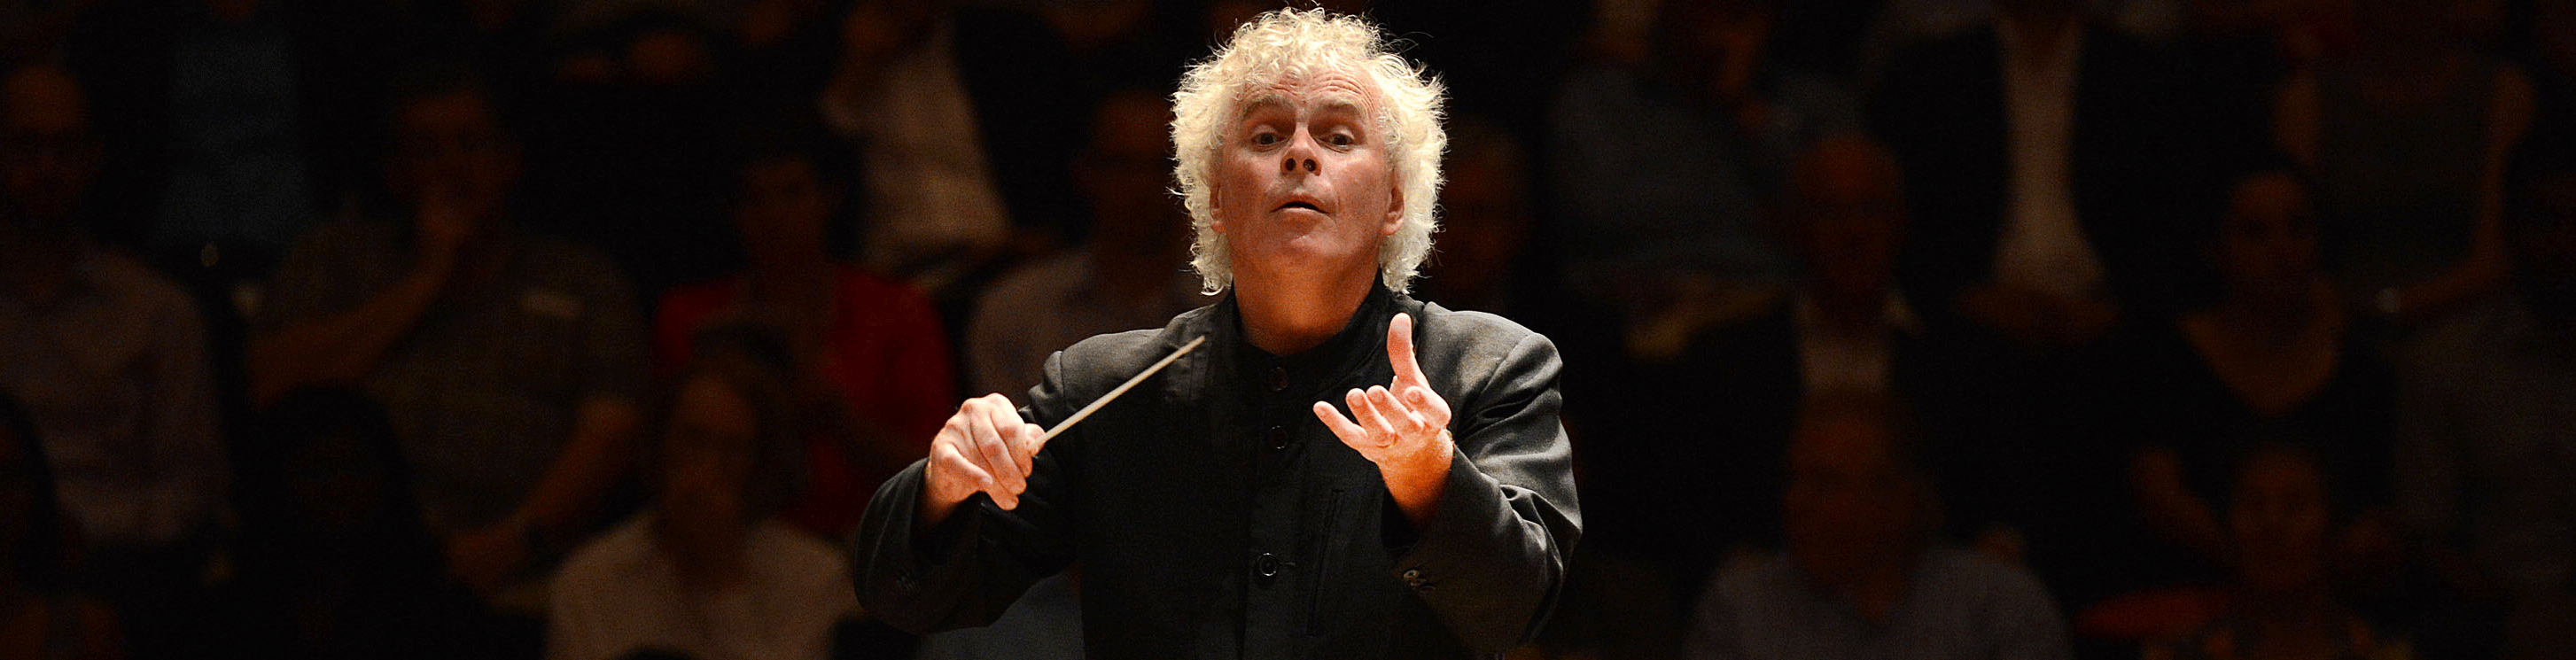 Sir Simon Rattle conducts Berlioz's The Damnation of Faust